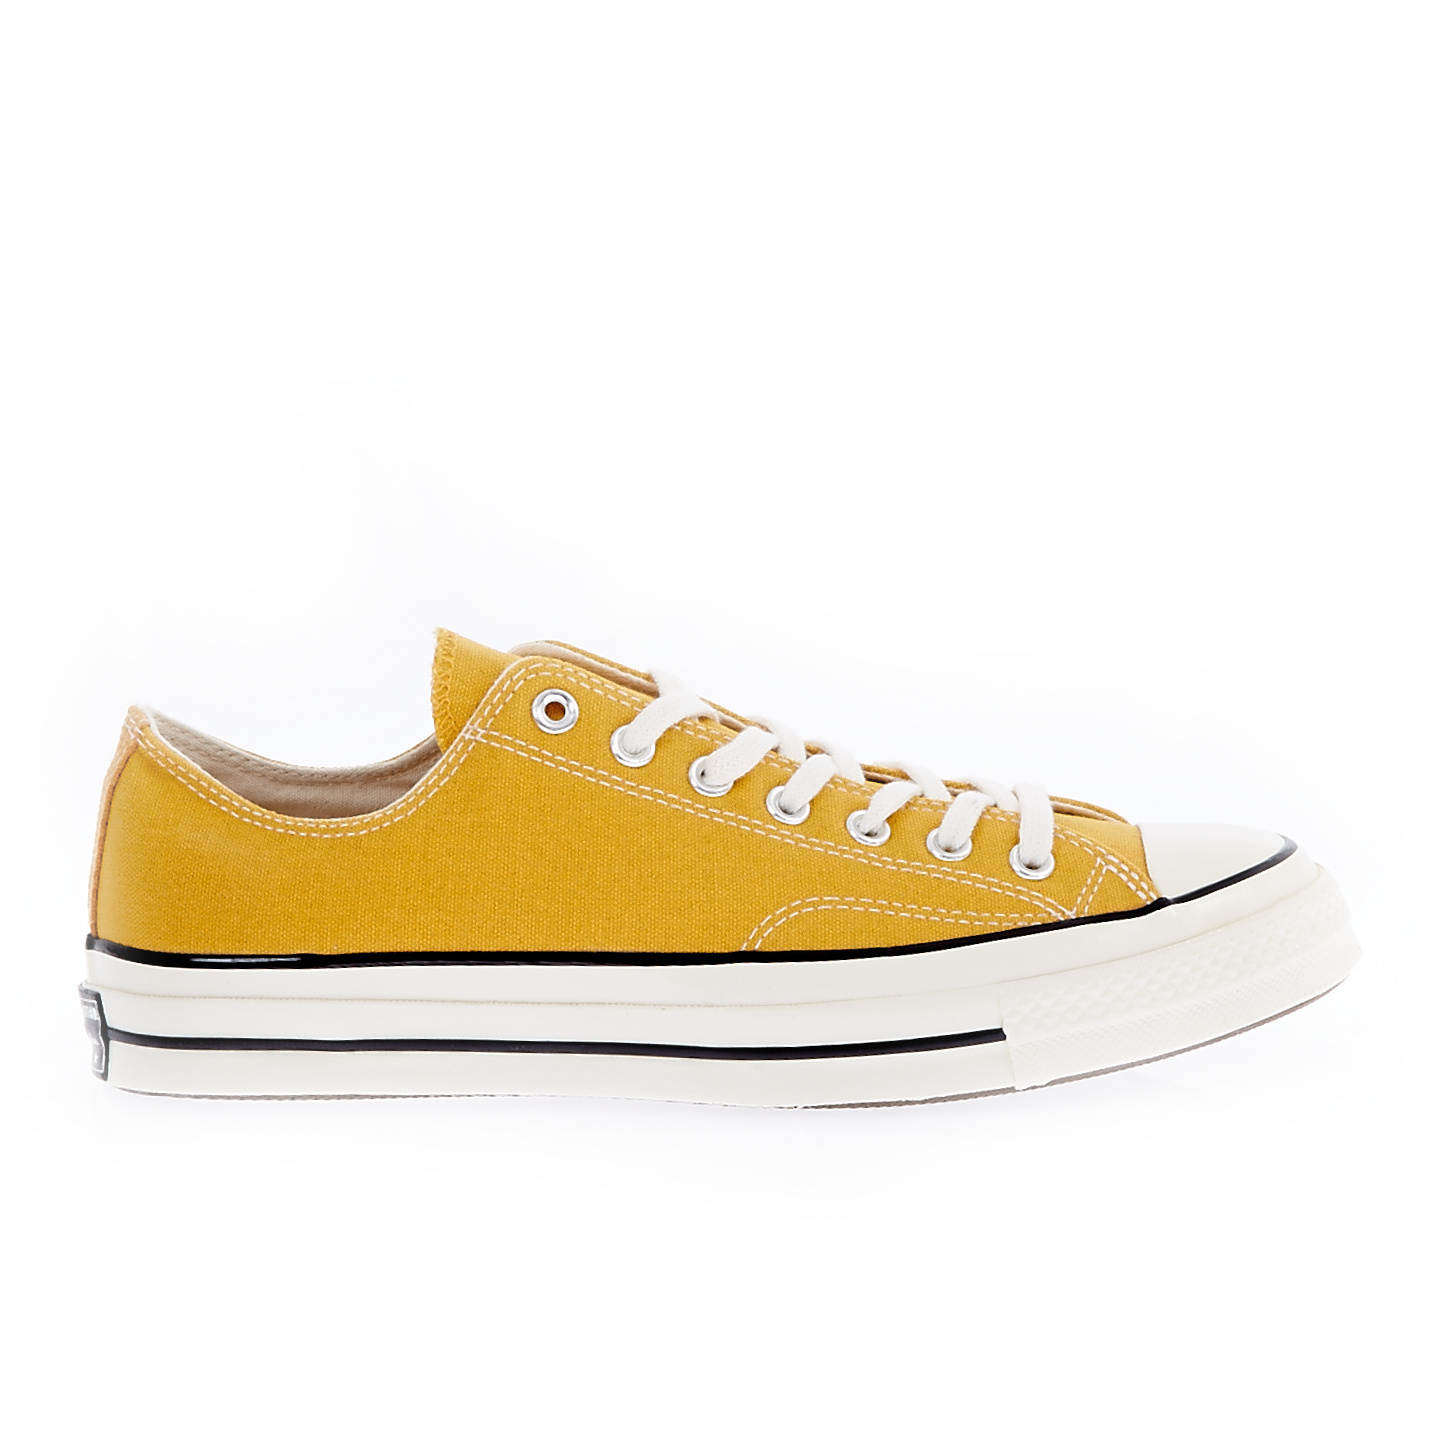 CONVERSE – Unisex παπούτσια Chuck Taylor All Star '70 Ox κίτρινα